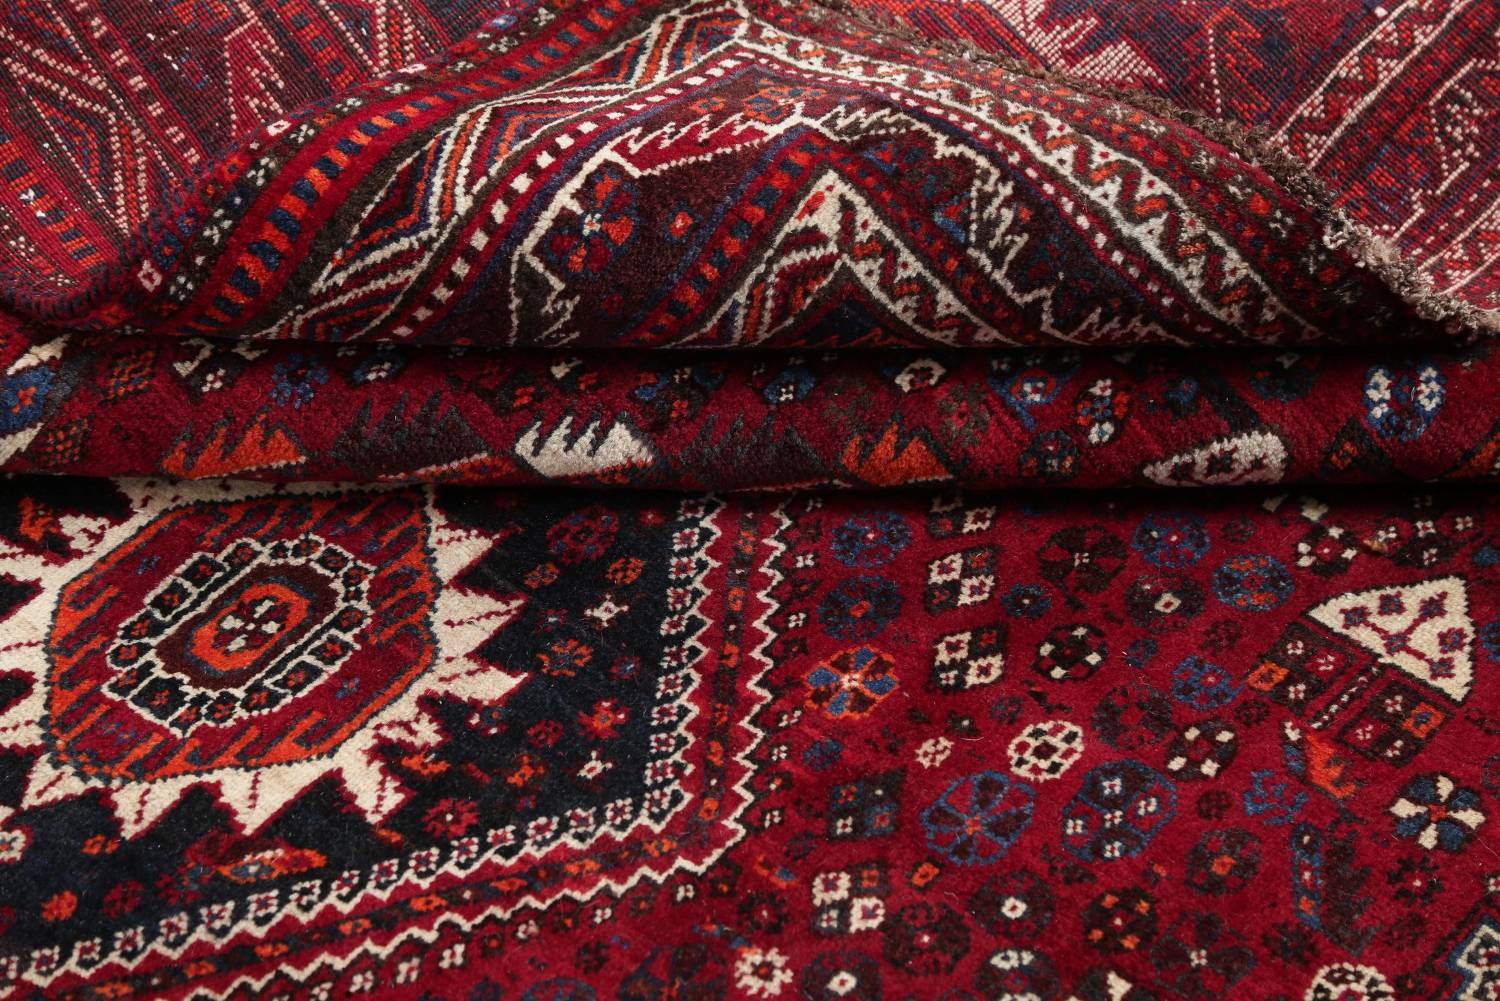 Antique Red Tribal Geometric Qashqai Persian Hand-Knotted 5x8 Wool Area Rug image 17